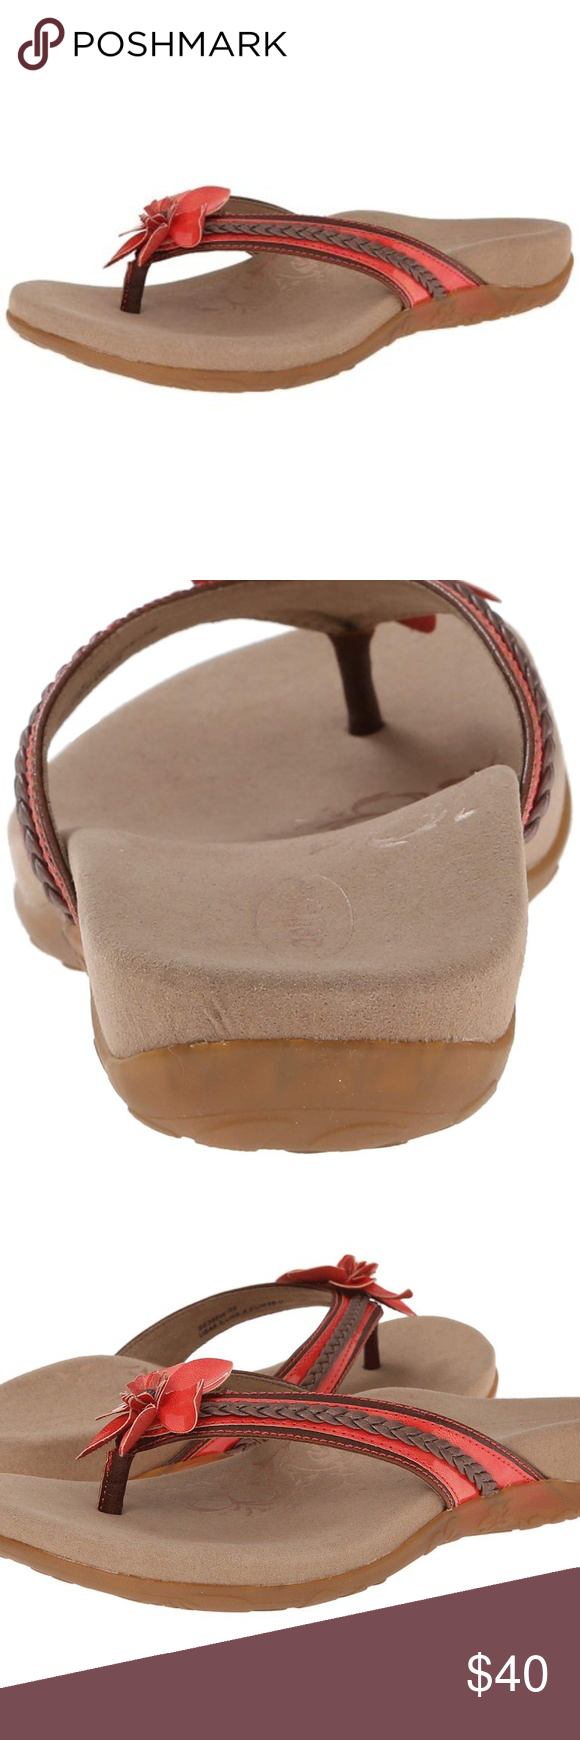 25aed574981 Aetrex Selena Coral Flower Thong Sandals 7 Aetrex Selena is a casual women s  thong style flip